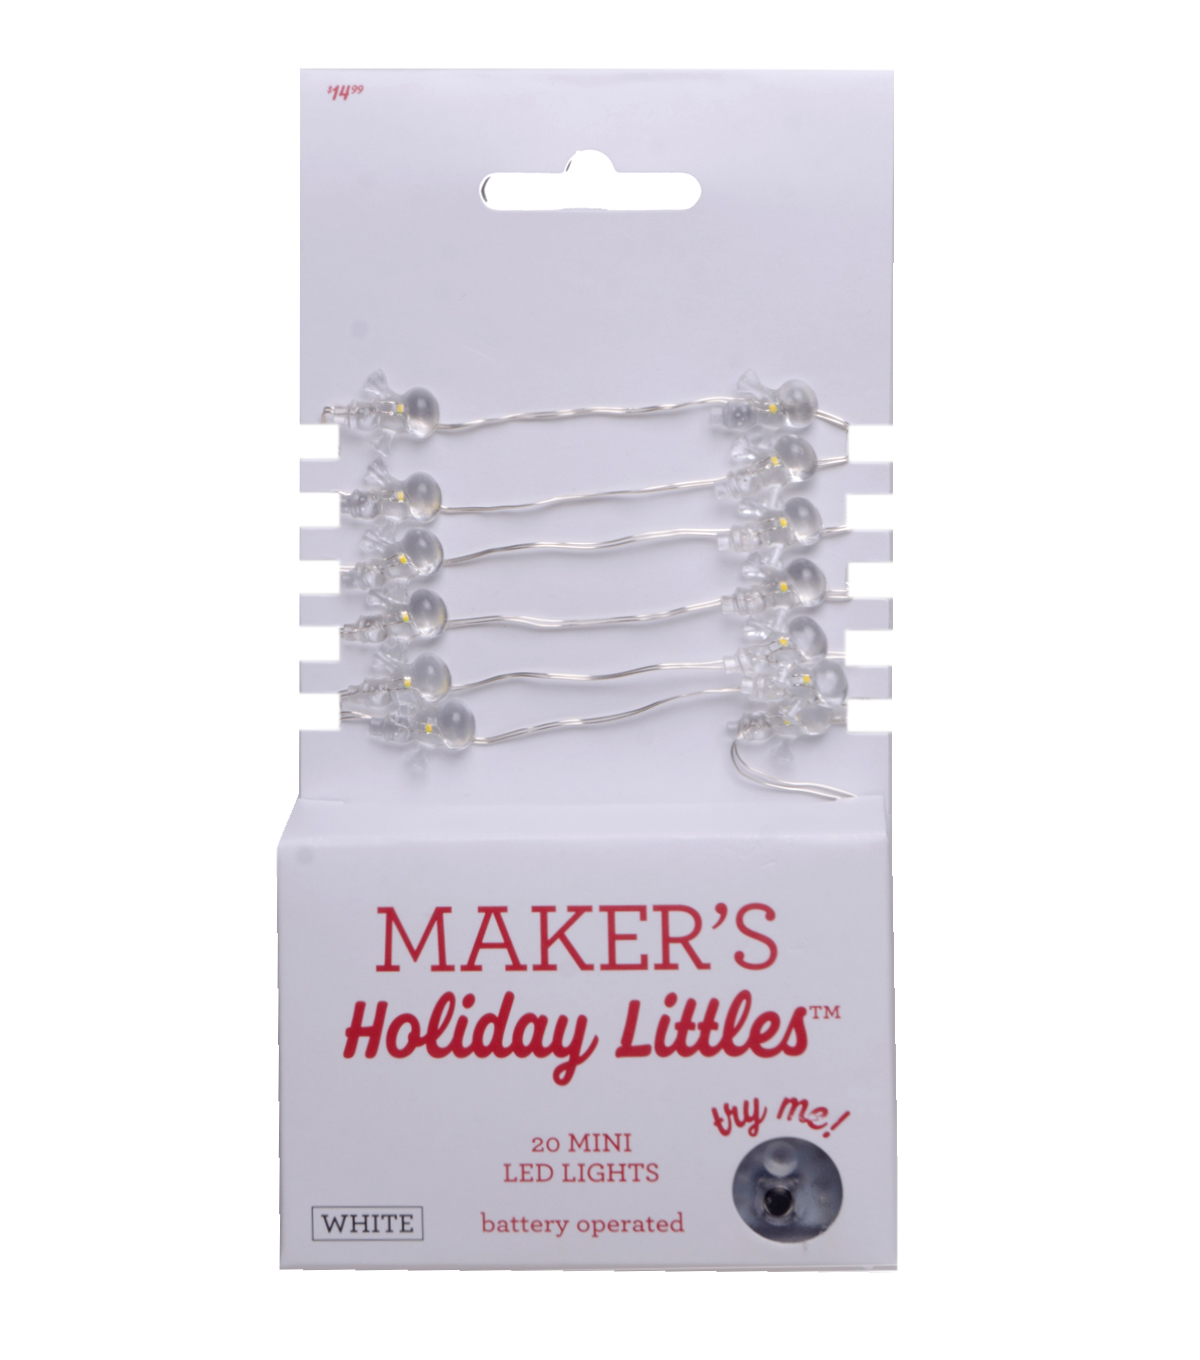 Maker\u0027s Holiday Christmas Littles 20 ct Snowman LED Light-White & Silver